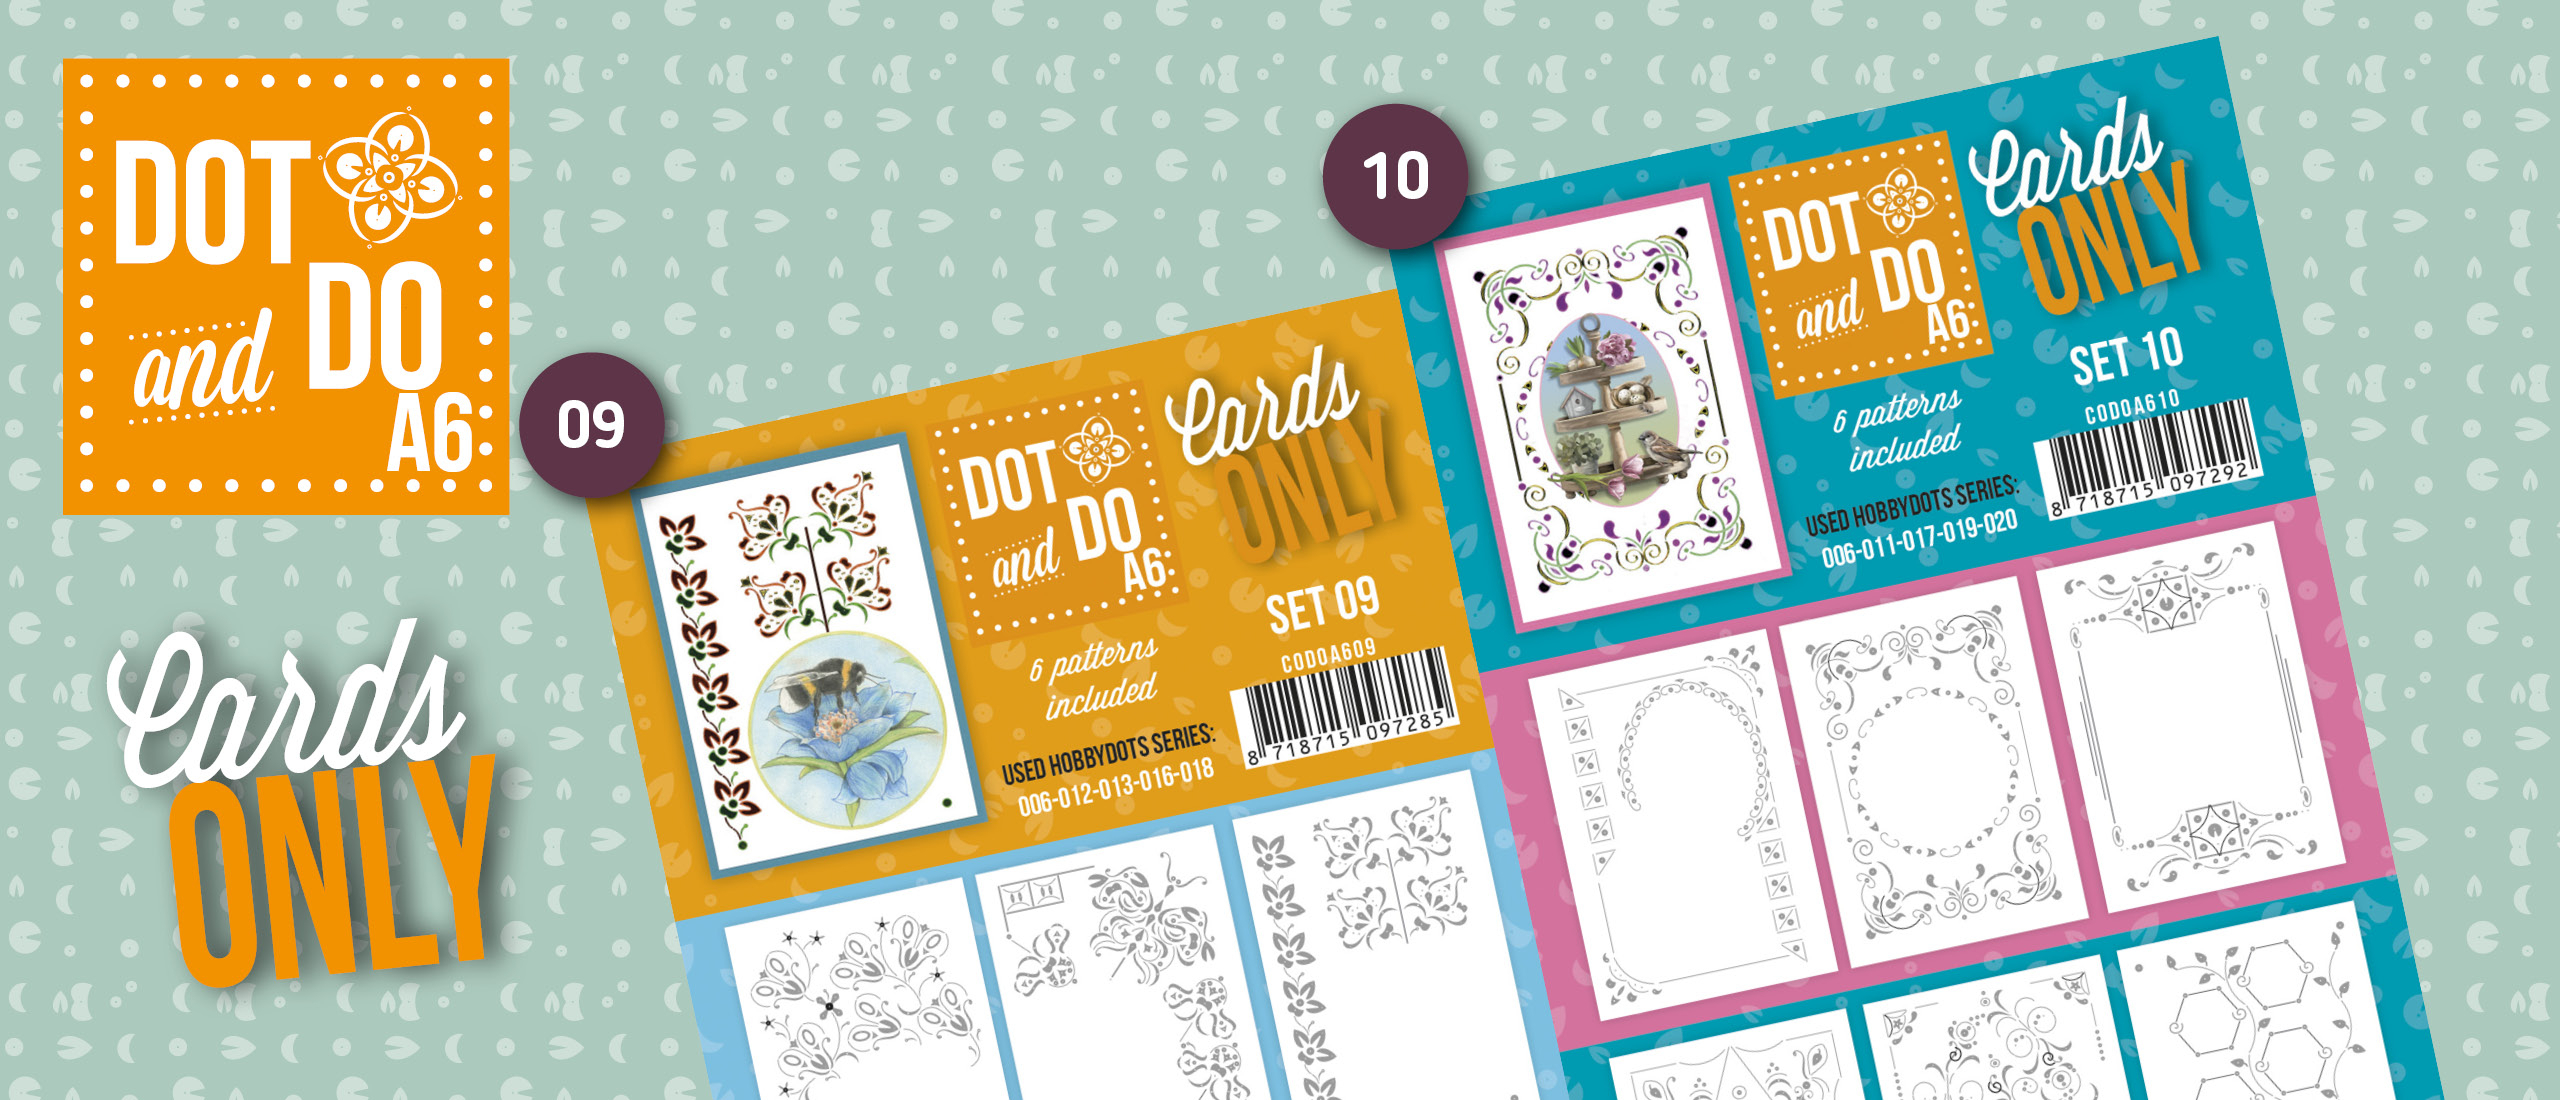 Dot and Do - Cards Only A6 - Set 09 en 10